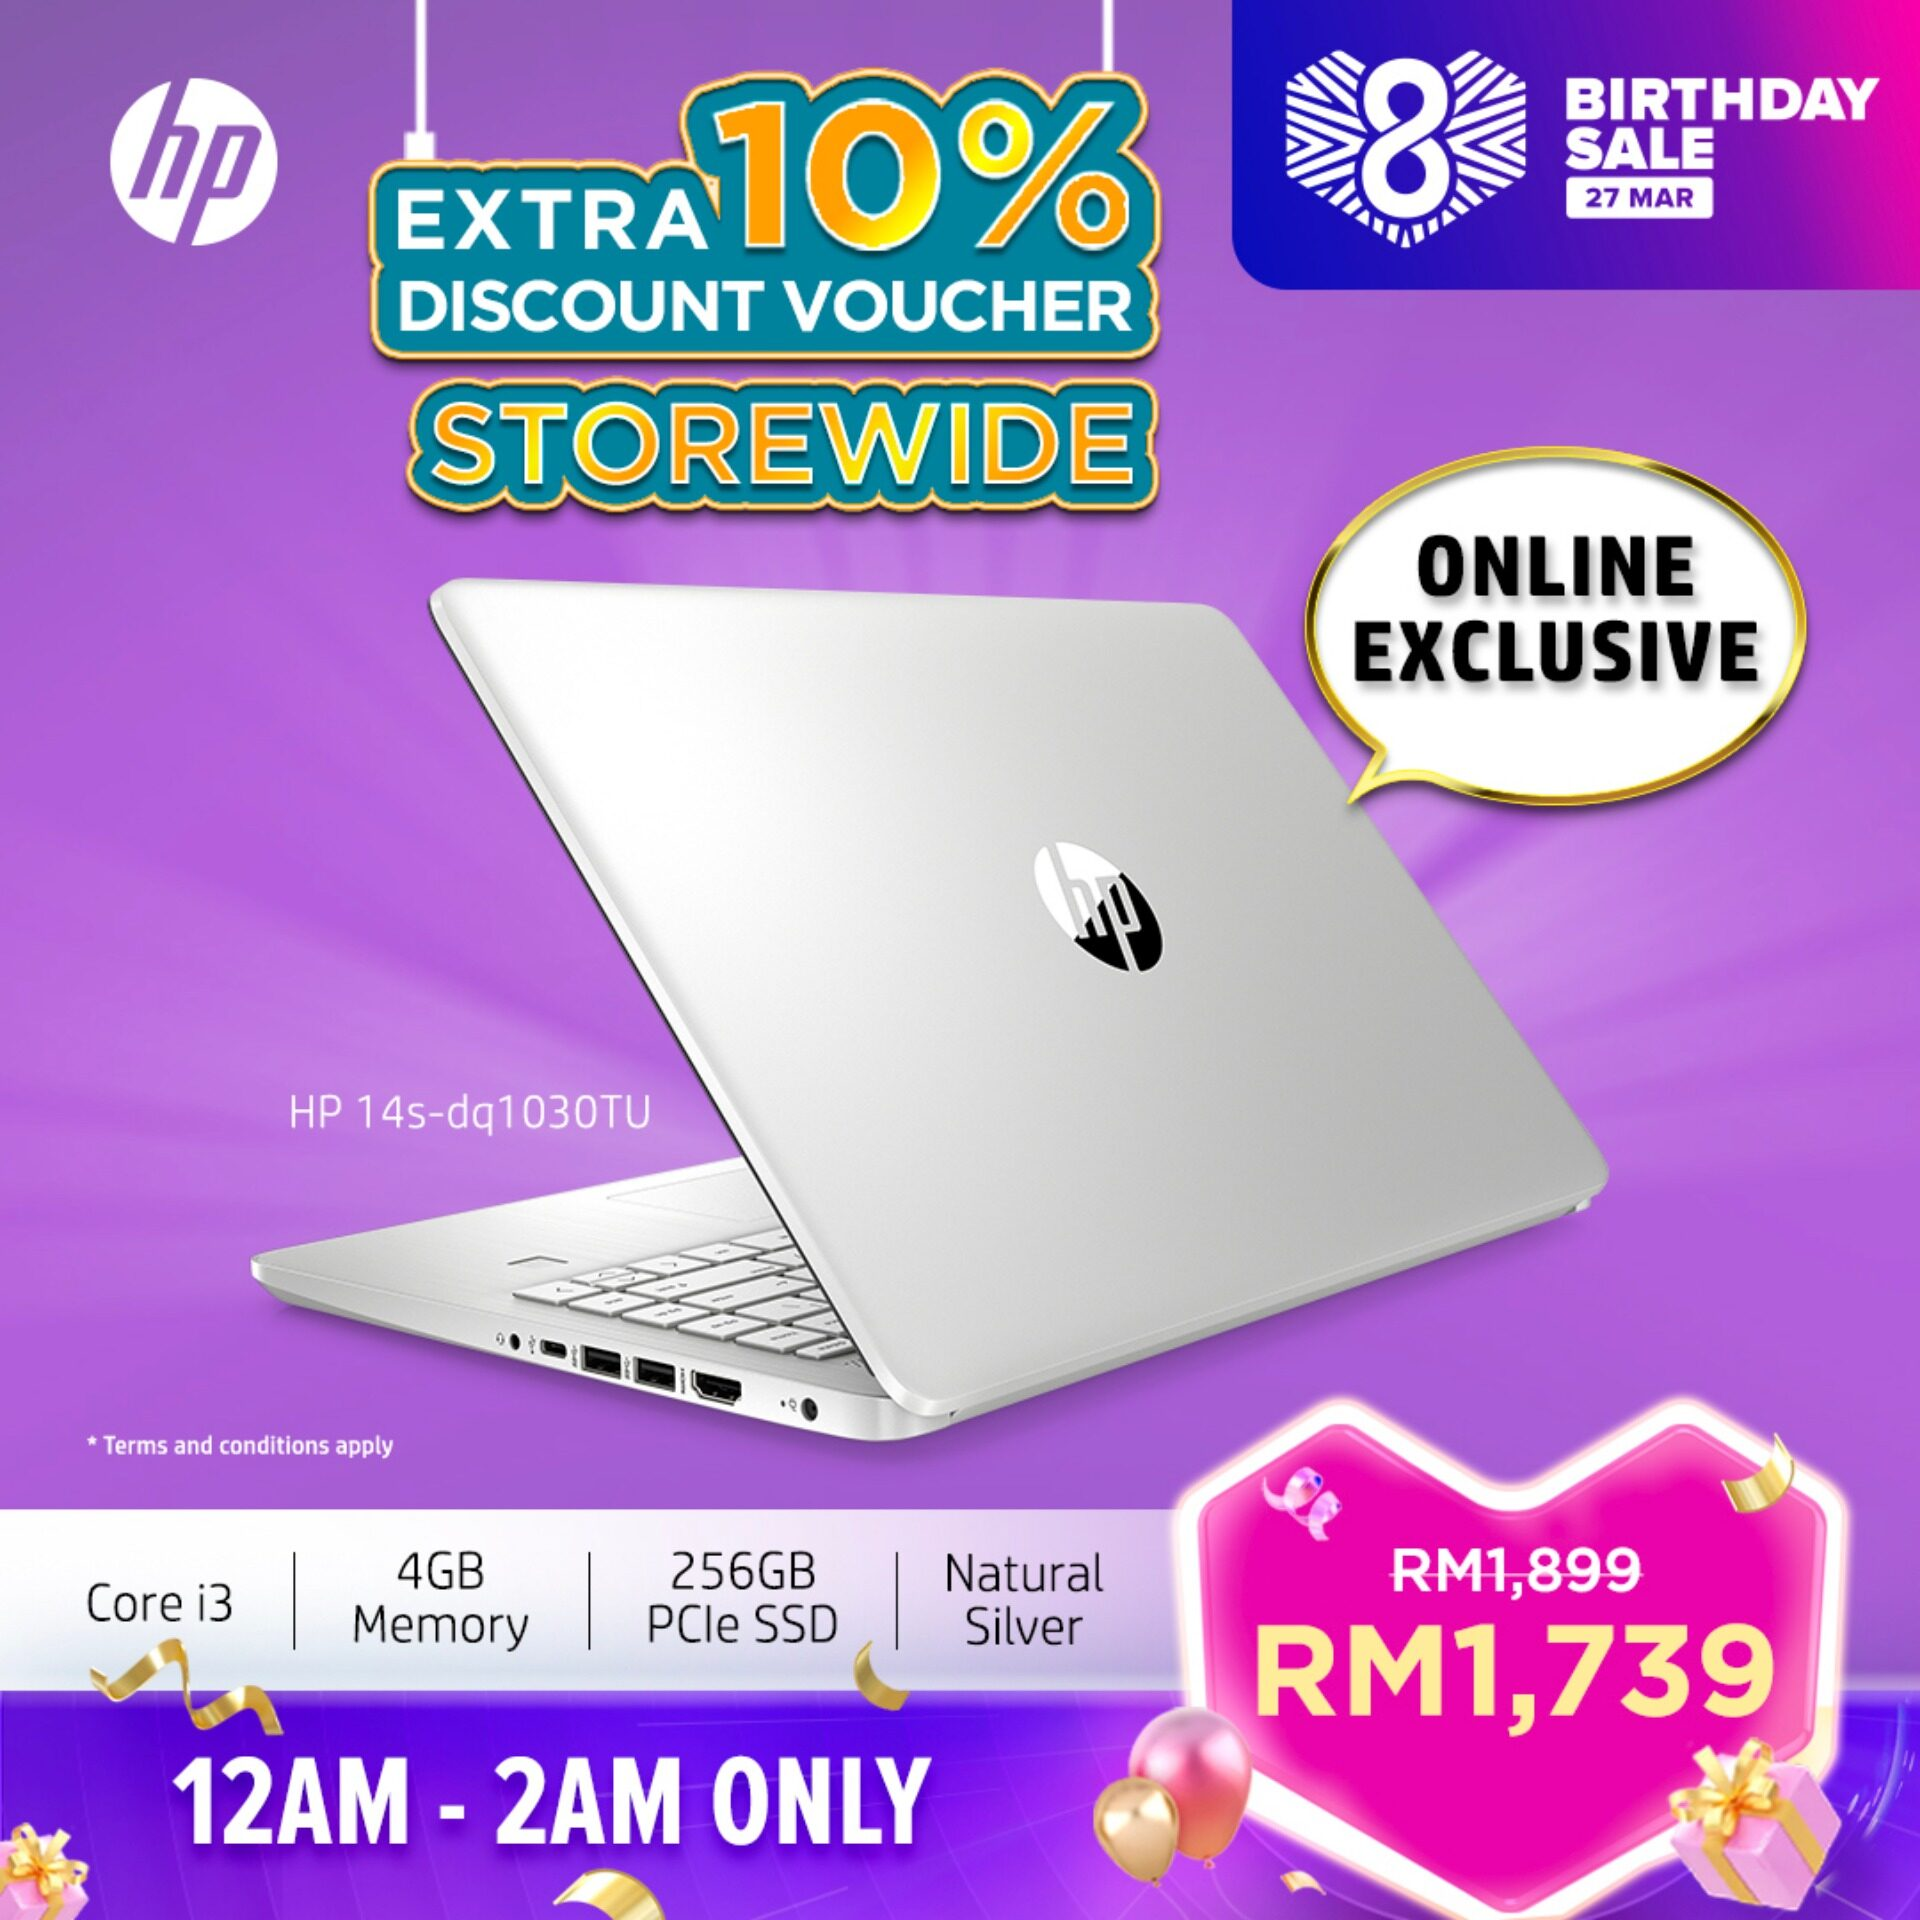 HP Laptop 14s-dq1030tu - Intel 10th Gen Processor ONLINE EXCLUSIVE [FREE Delivery & Backpack] Malaysia